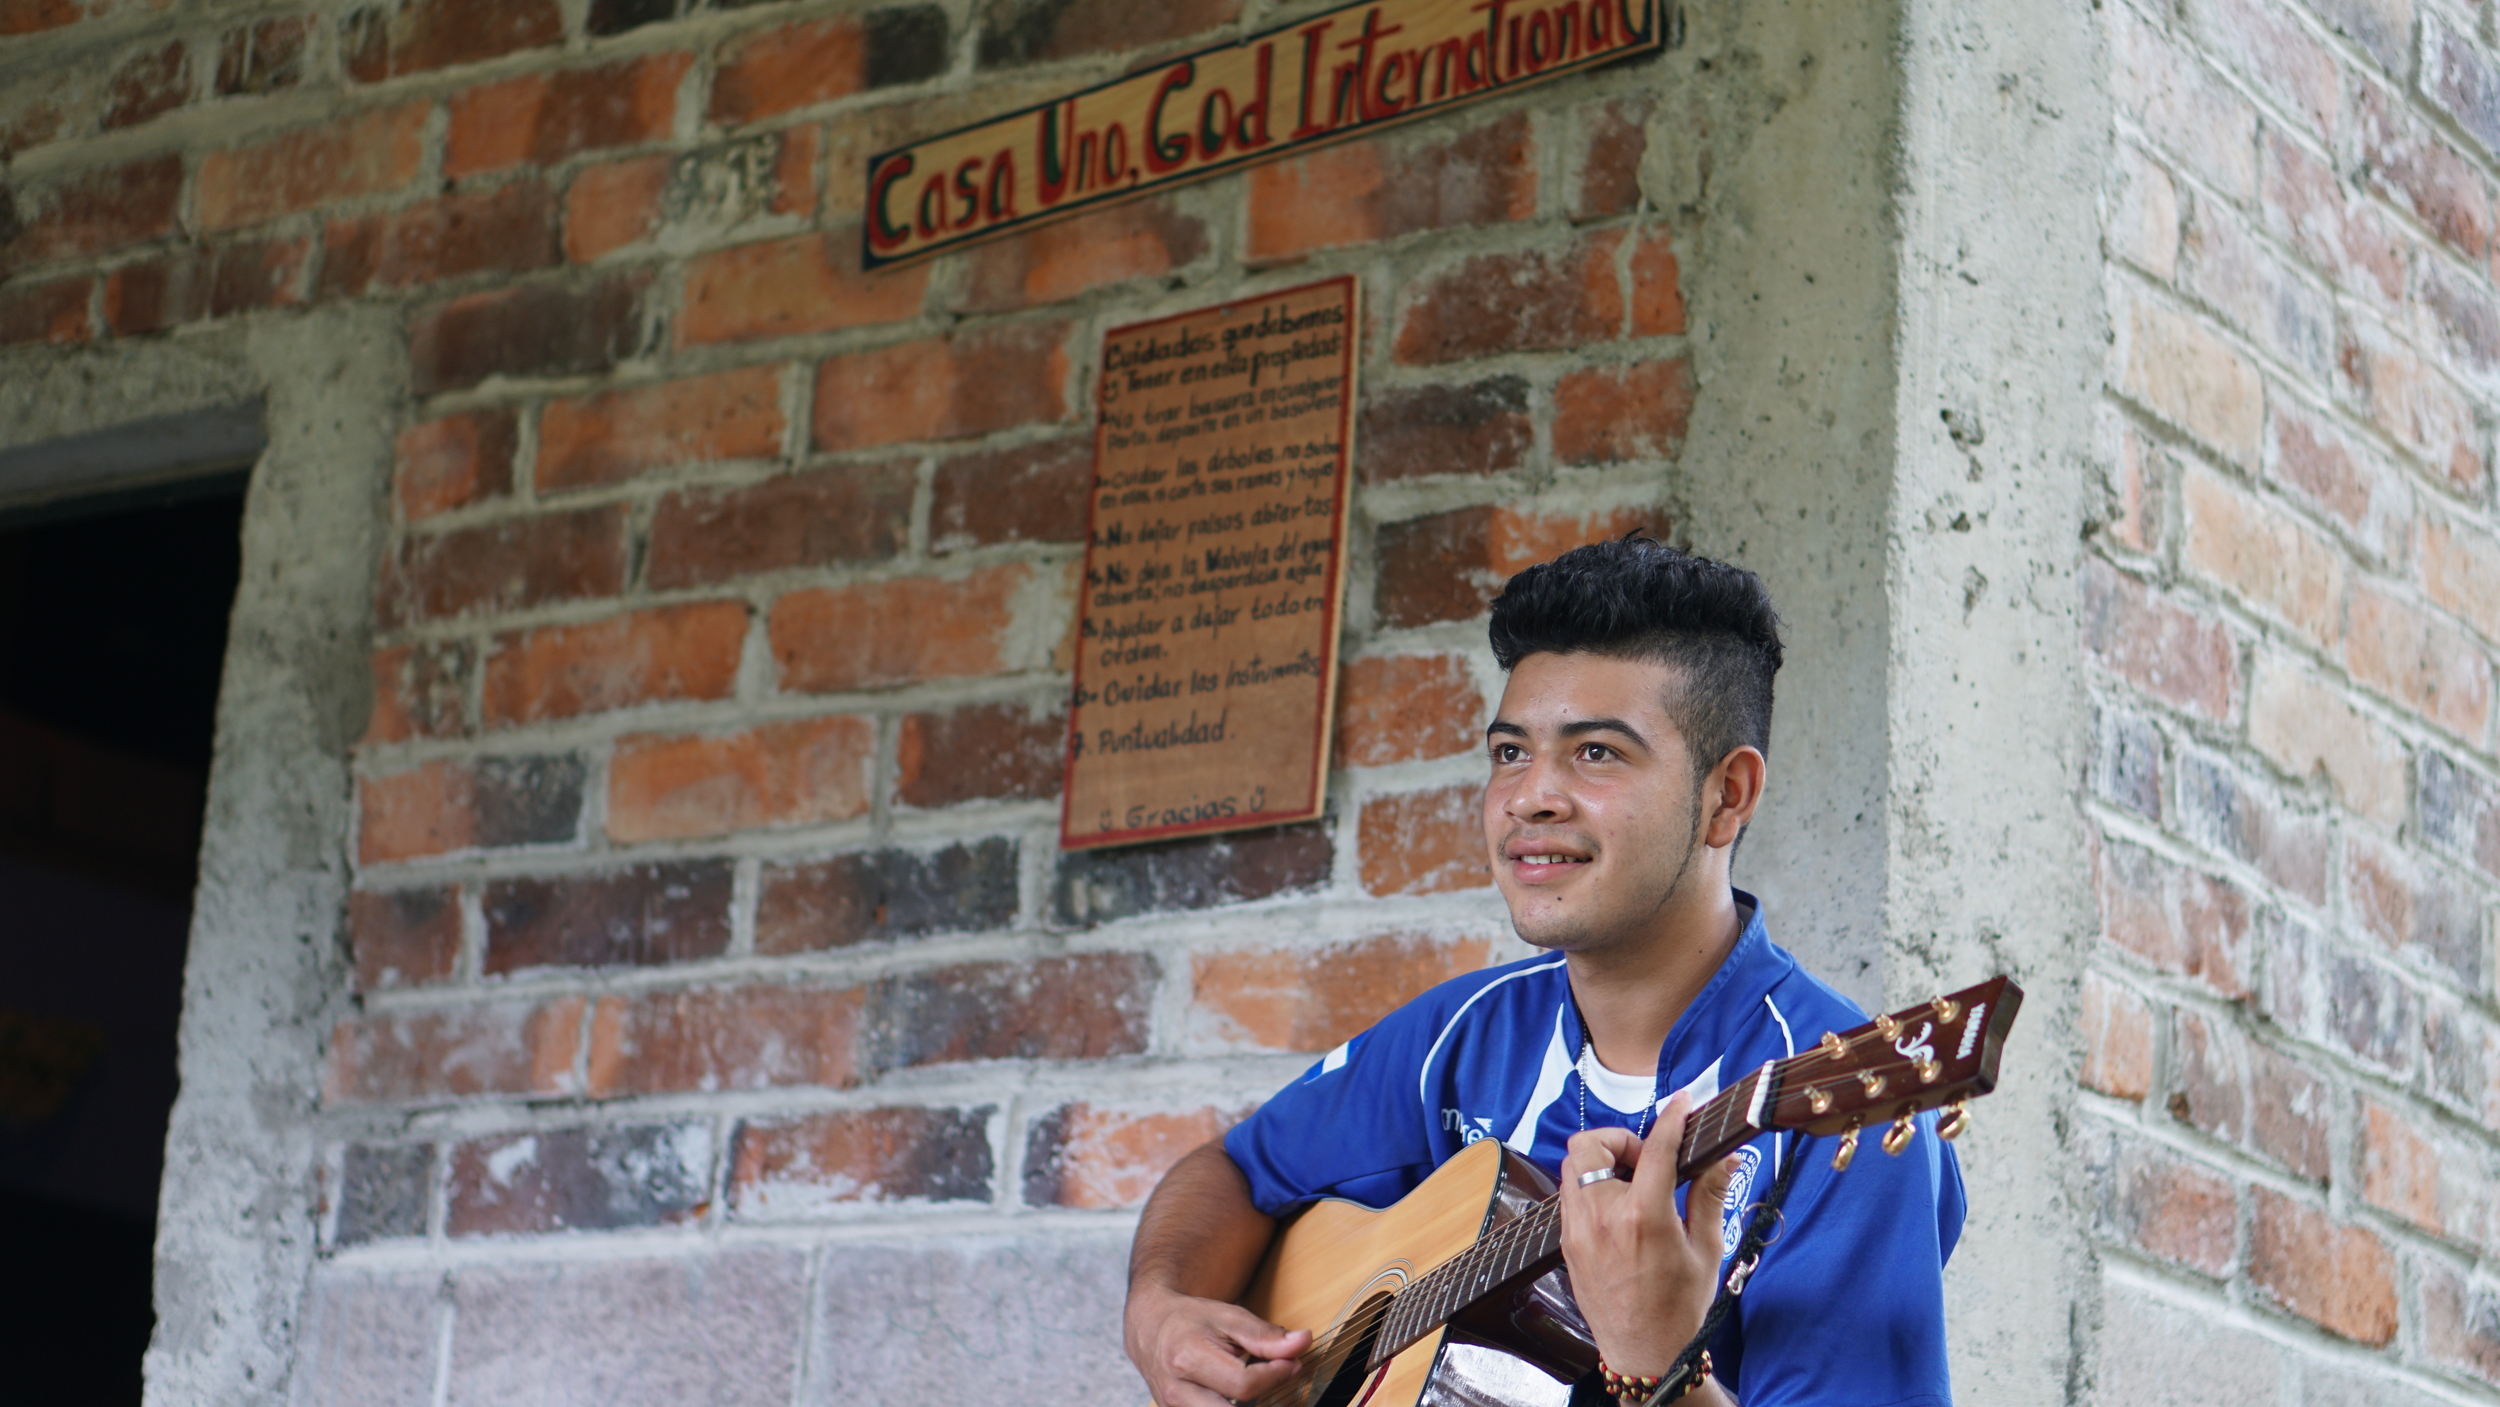 Roberto, a youth who lives nearby our property, has been learning how to play guitar at our community center, which features a music recording room.